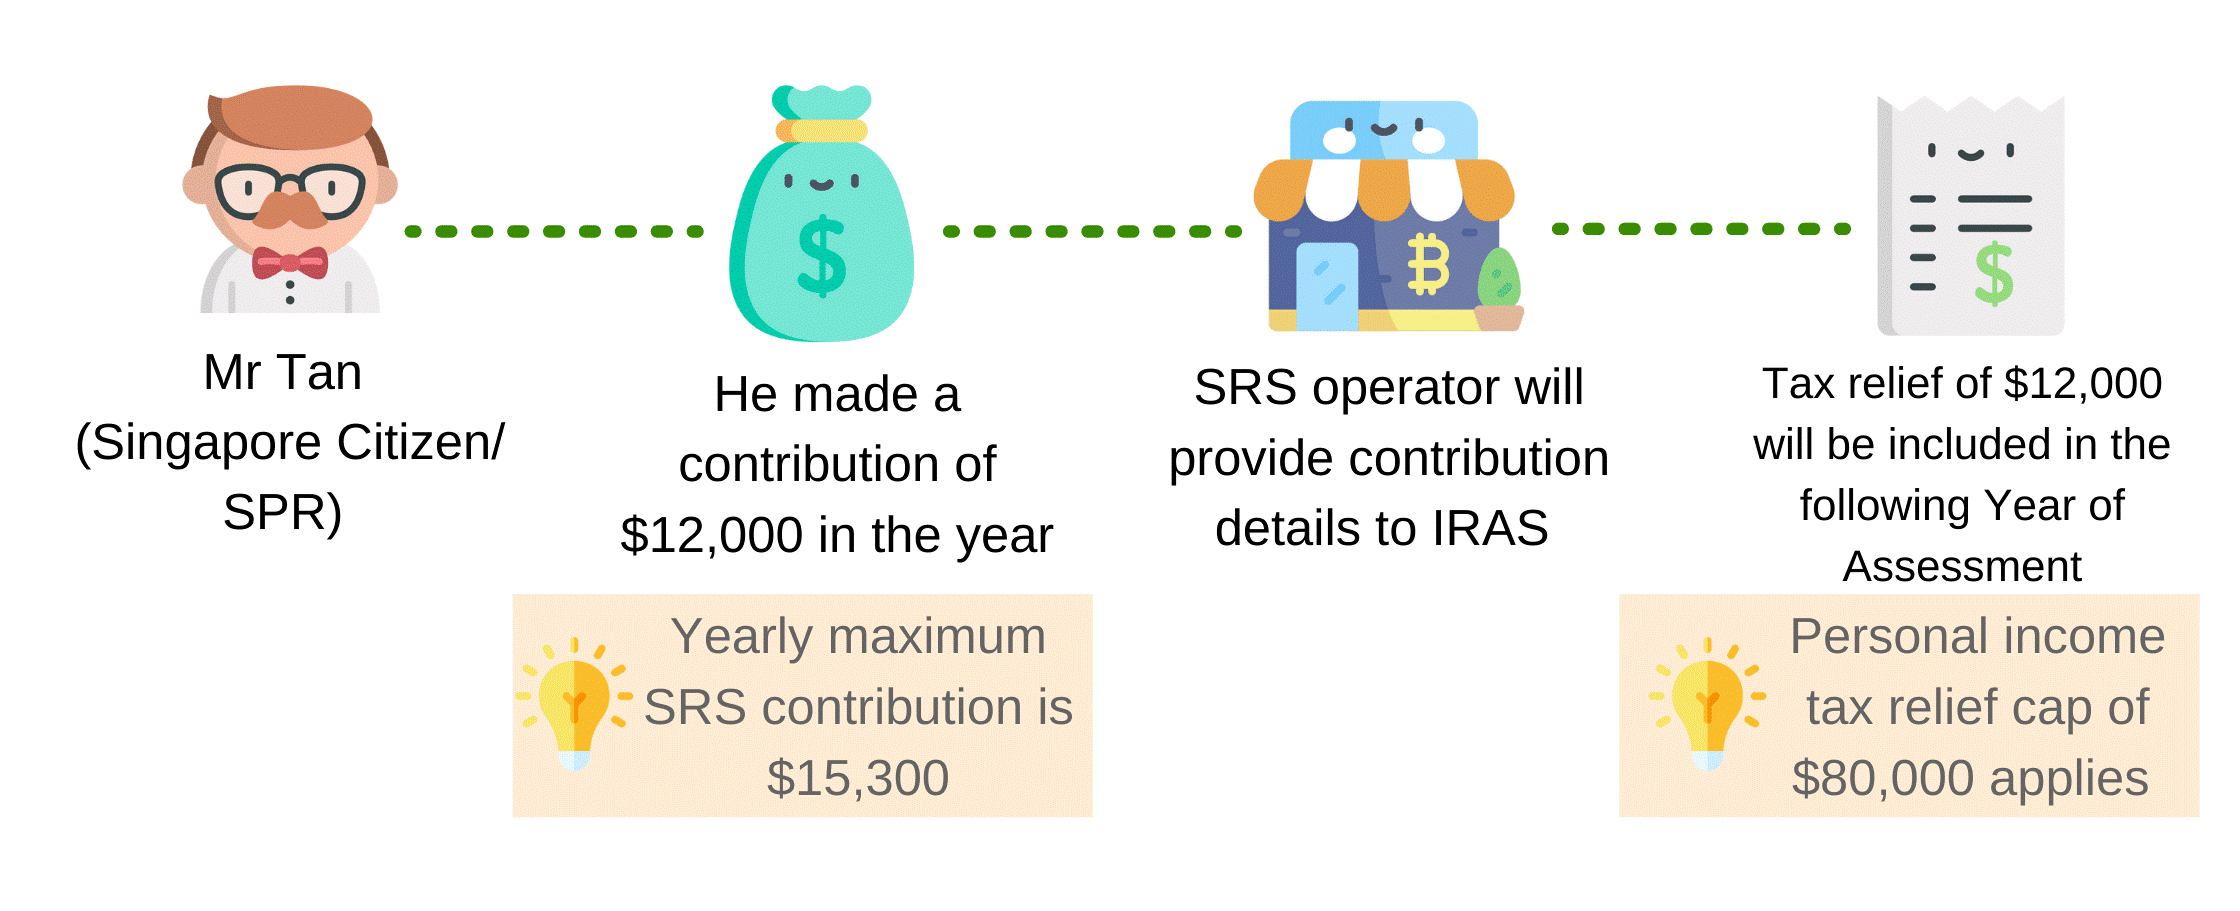 SRS contribution and tax relief